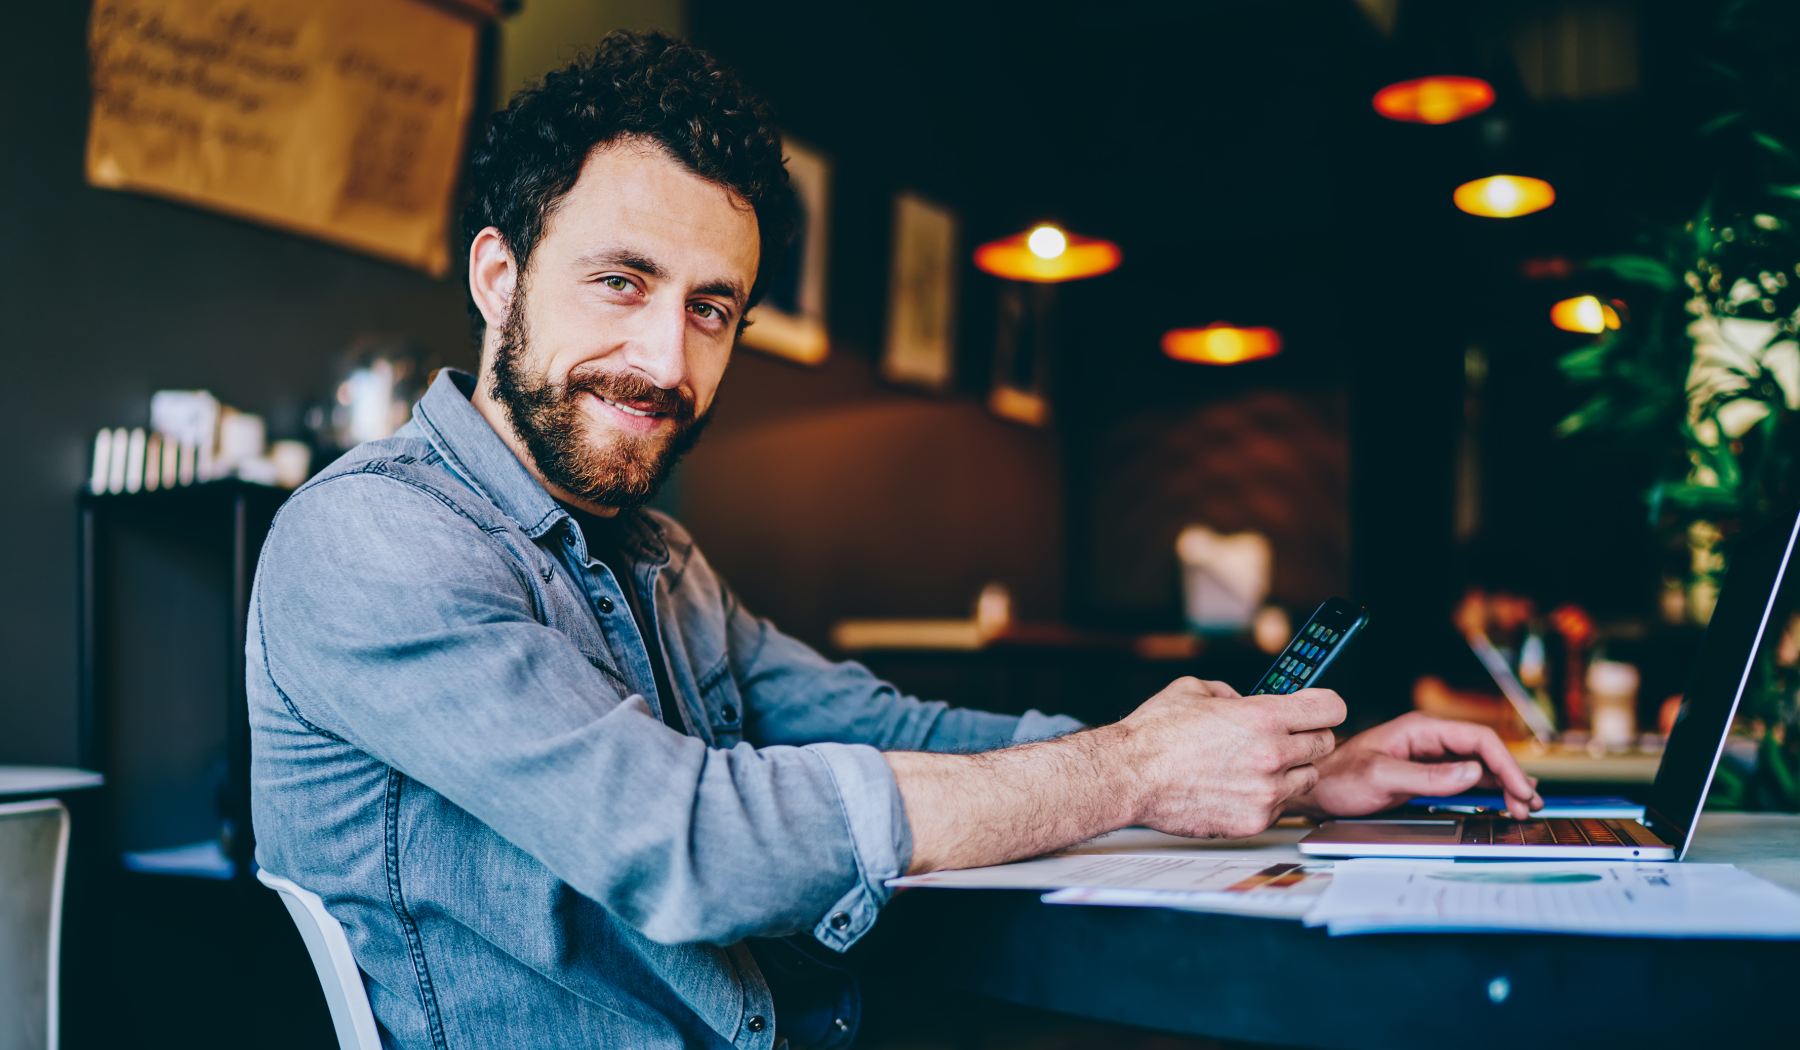 5-Step Plan to Take on the Growing Takeaway Culture